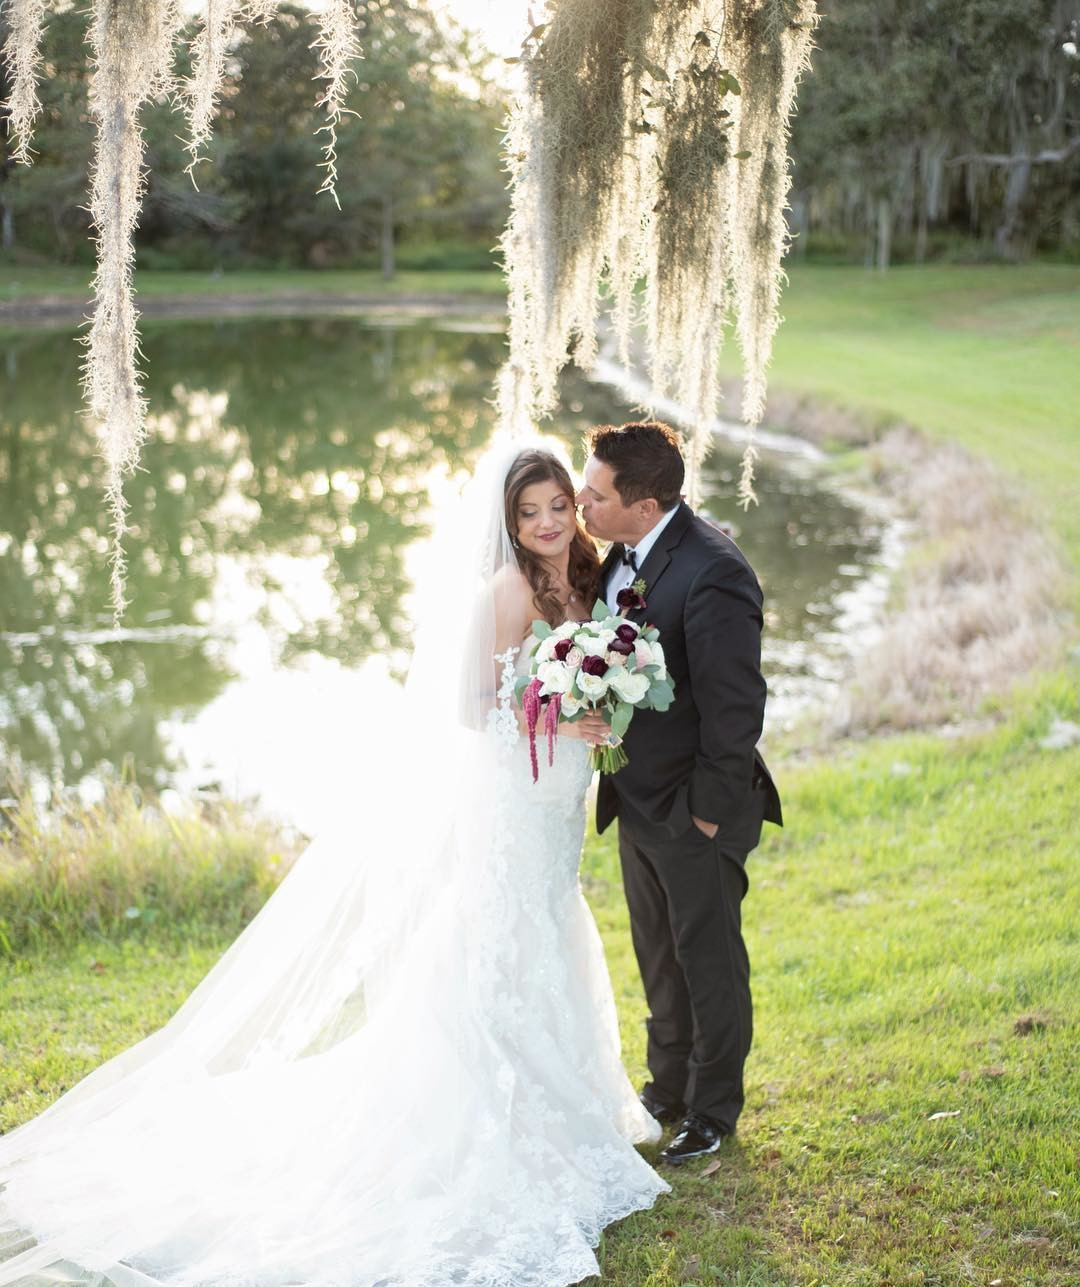 Everything about this couple and this wedding was an absolute fairy tale! I'm so grateful to be a part of making dreams come true